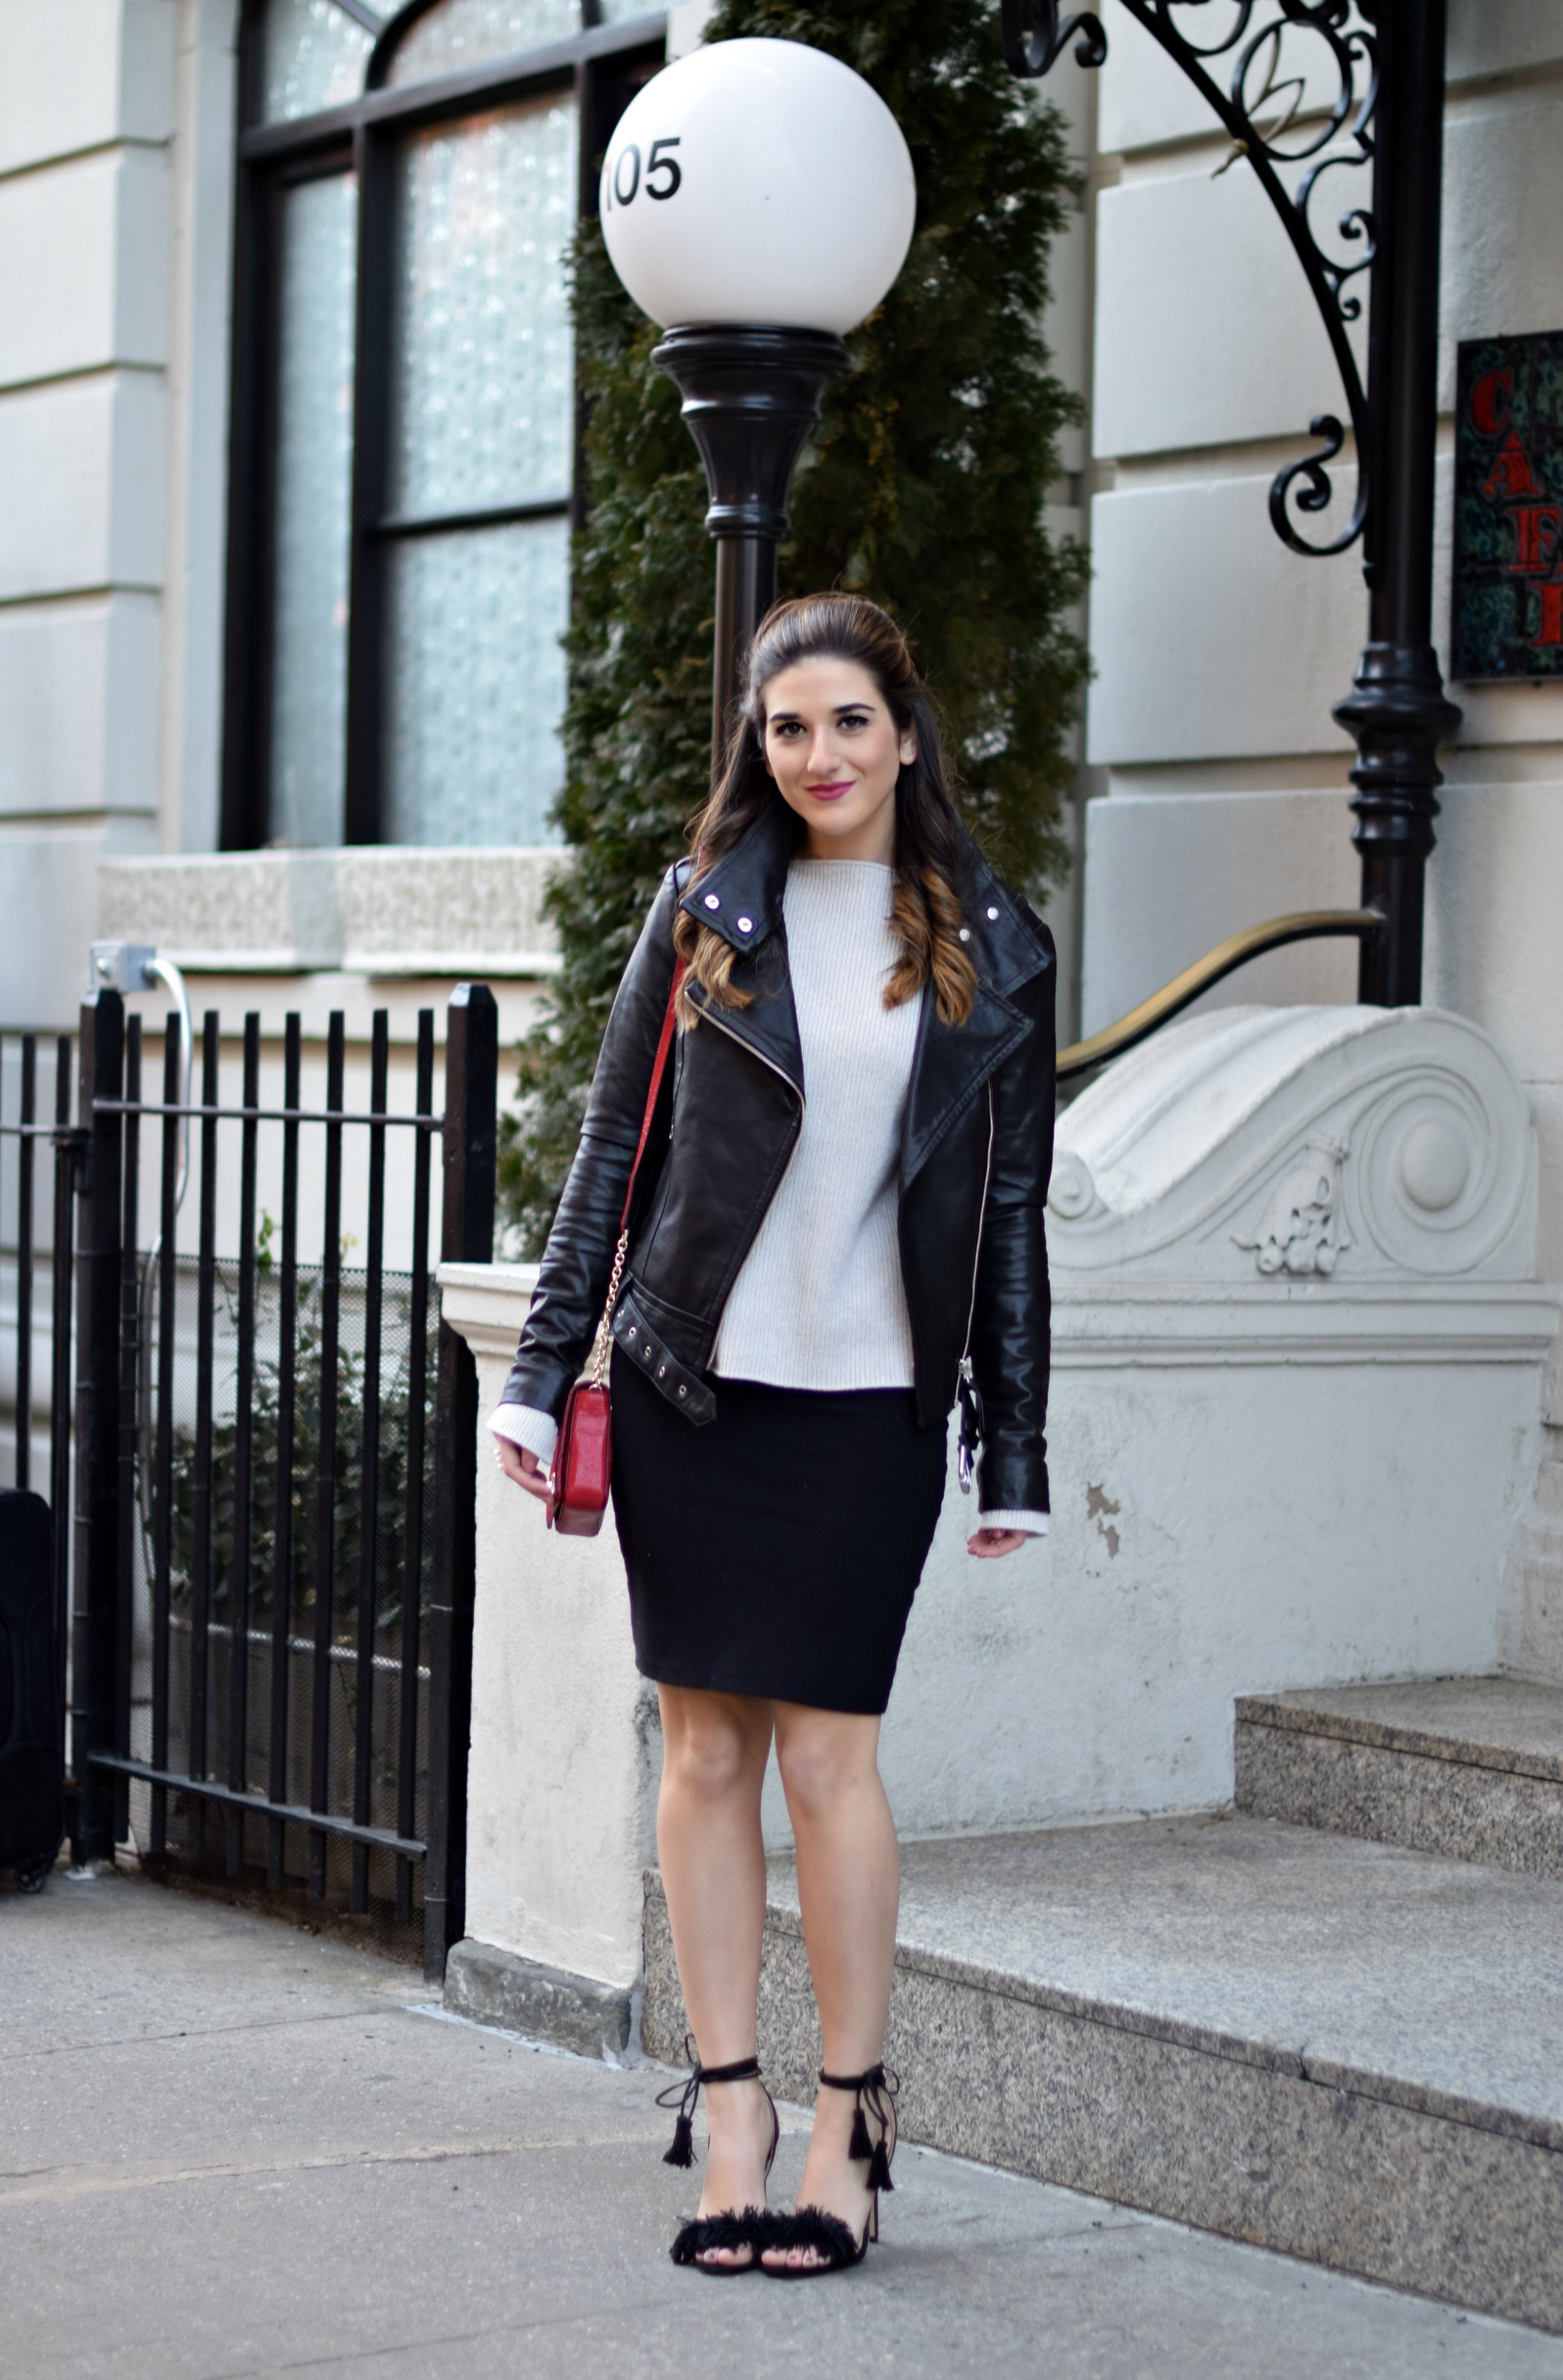 Ivanka Trump Fringe Sandals Mackage Moto Jacket Louboutins & Love Fashion Blog Esther Santer NYC Street Style Blogger Outfit OOTD Leather Summer Spring Designer Clothes Shop Model Photoshoot Helmut Lang Sweater Skirt Beautiful Pretty Shoes Girl Women.jpg